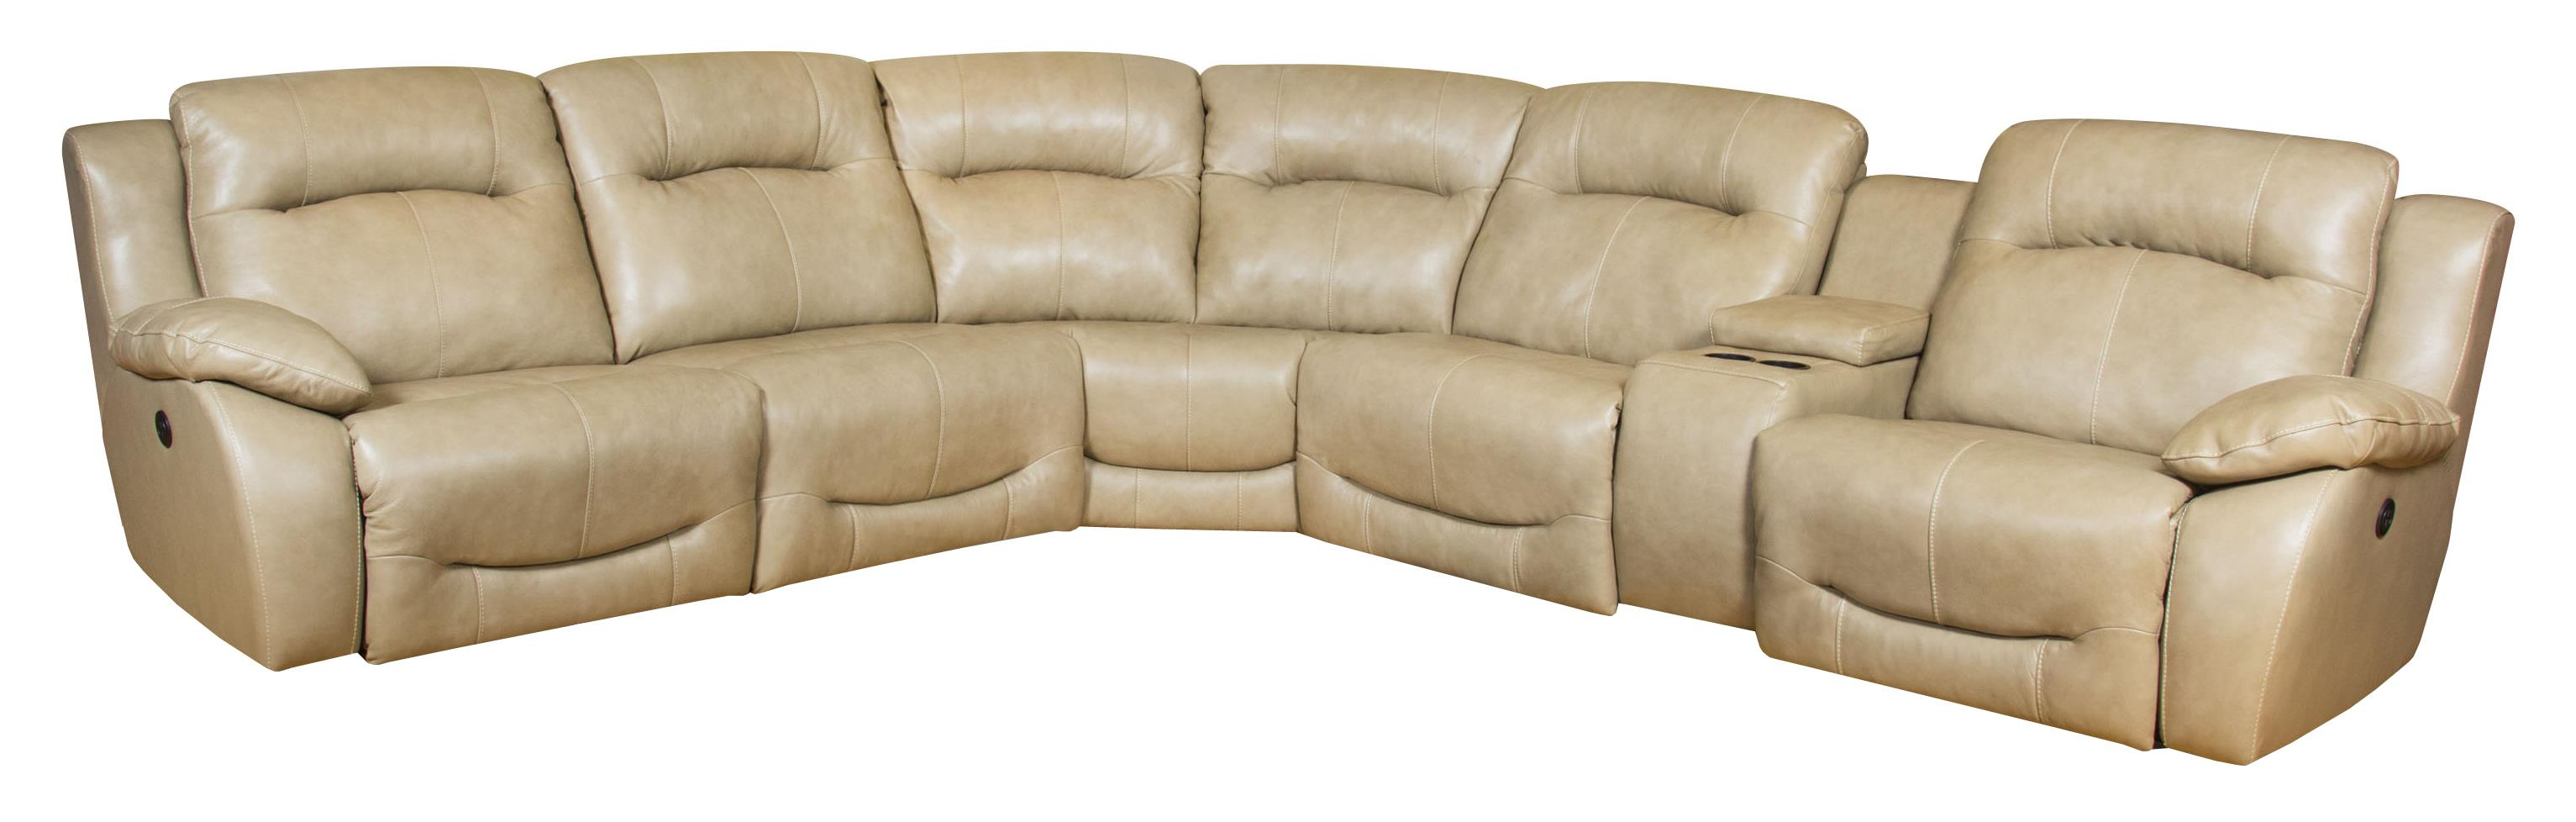 Southern Motion Eclipse Corner Shaped Power Reclining Sectional  - Item Number: 566-07P+92+84+92+47+08P-957-17